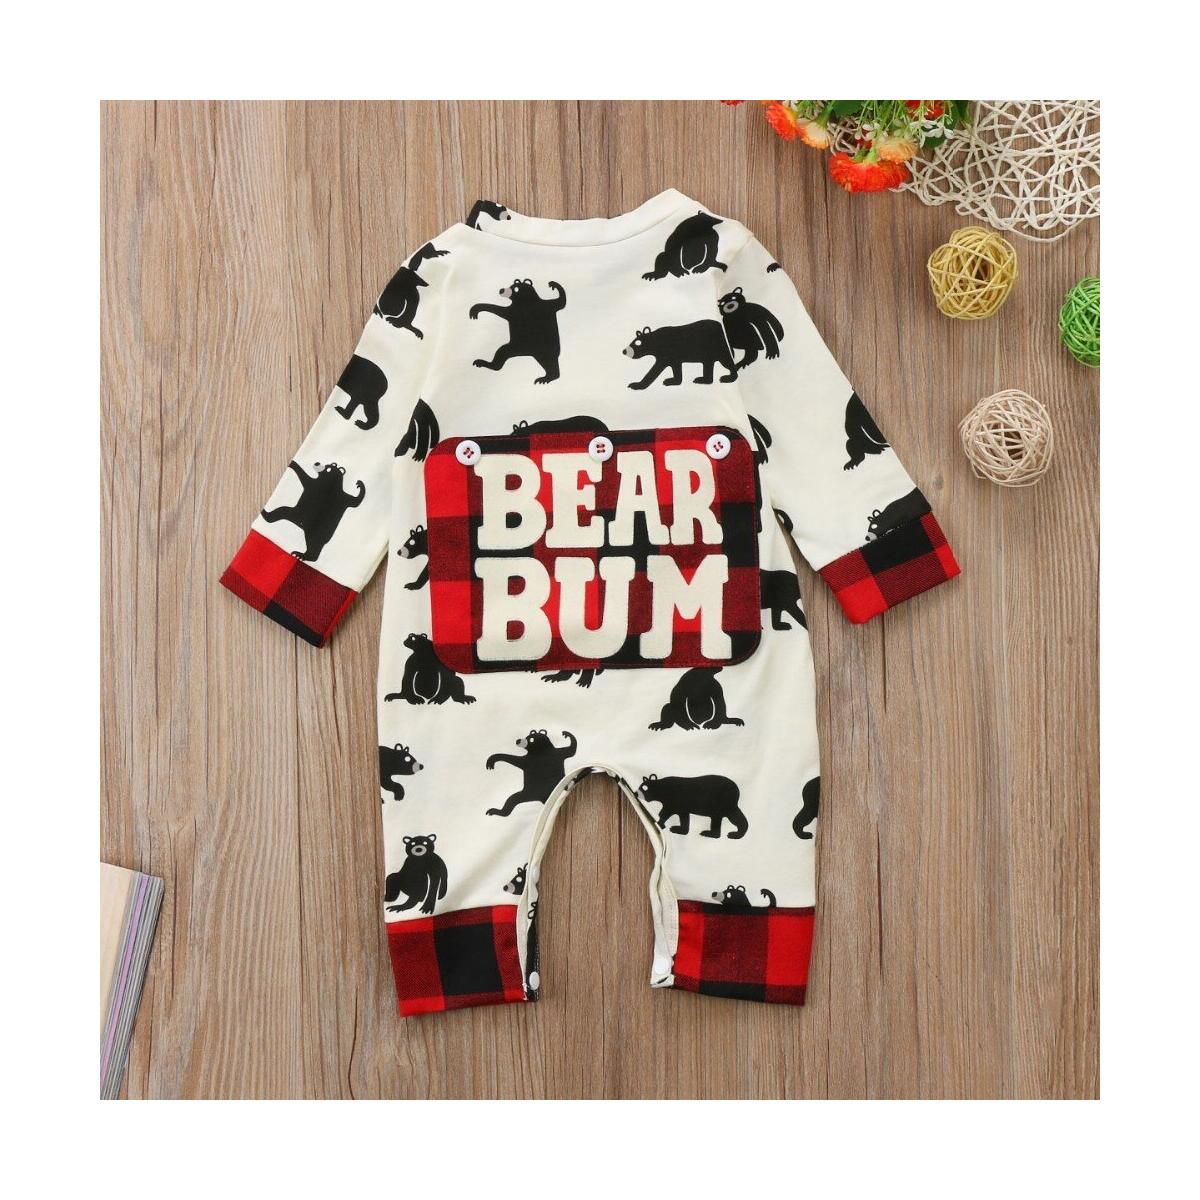 Baby Romper Kid Jumpsuit Cute Autumn WinterOutfits Cotton Outfits Cartoon Bear Bodysuits One-Pieces Print Bear Bum Warm Clothes